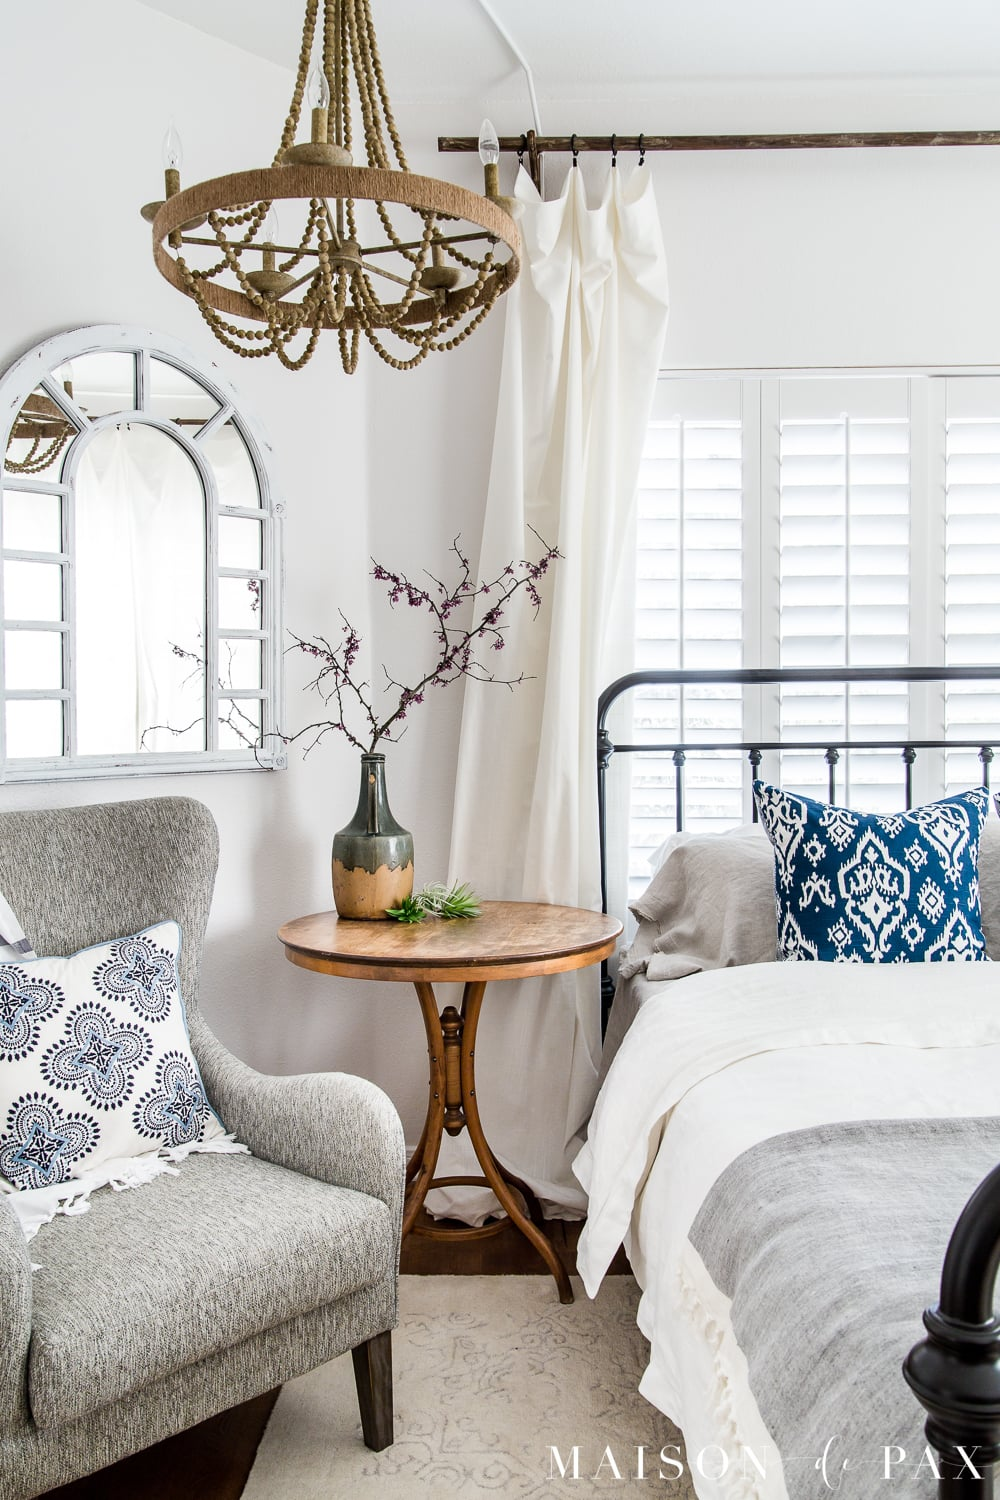 tip #4: create a floral focal point... Looking to add a seasonal touch to your bedroom?  Don't miss these incredibly simple master bedroom decorating ideas for spring! #springdecor #springbedroom #nightstand #modernfarmhouse